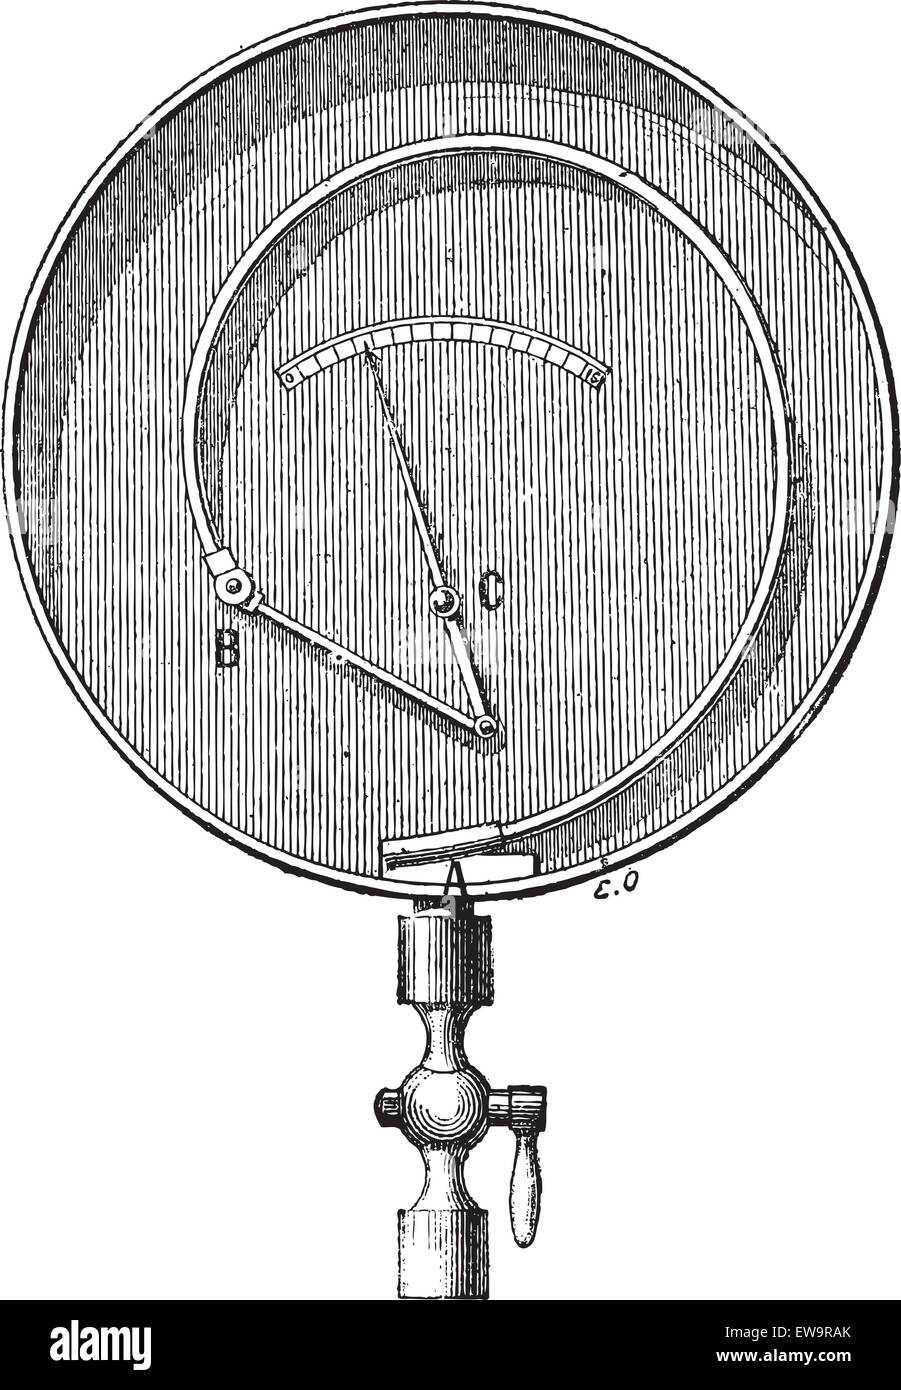 Bourdon Pressure Gauge, vintage engraved illustration. Dictionary of Words and Things - Larive and Fleury - 1895 - Stock Vector